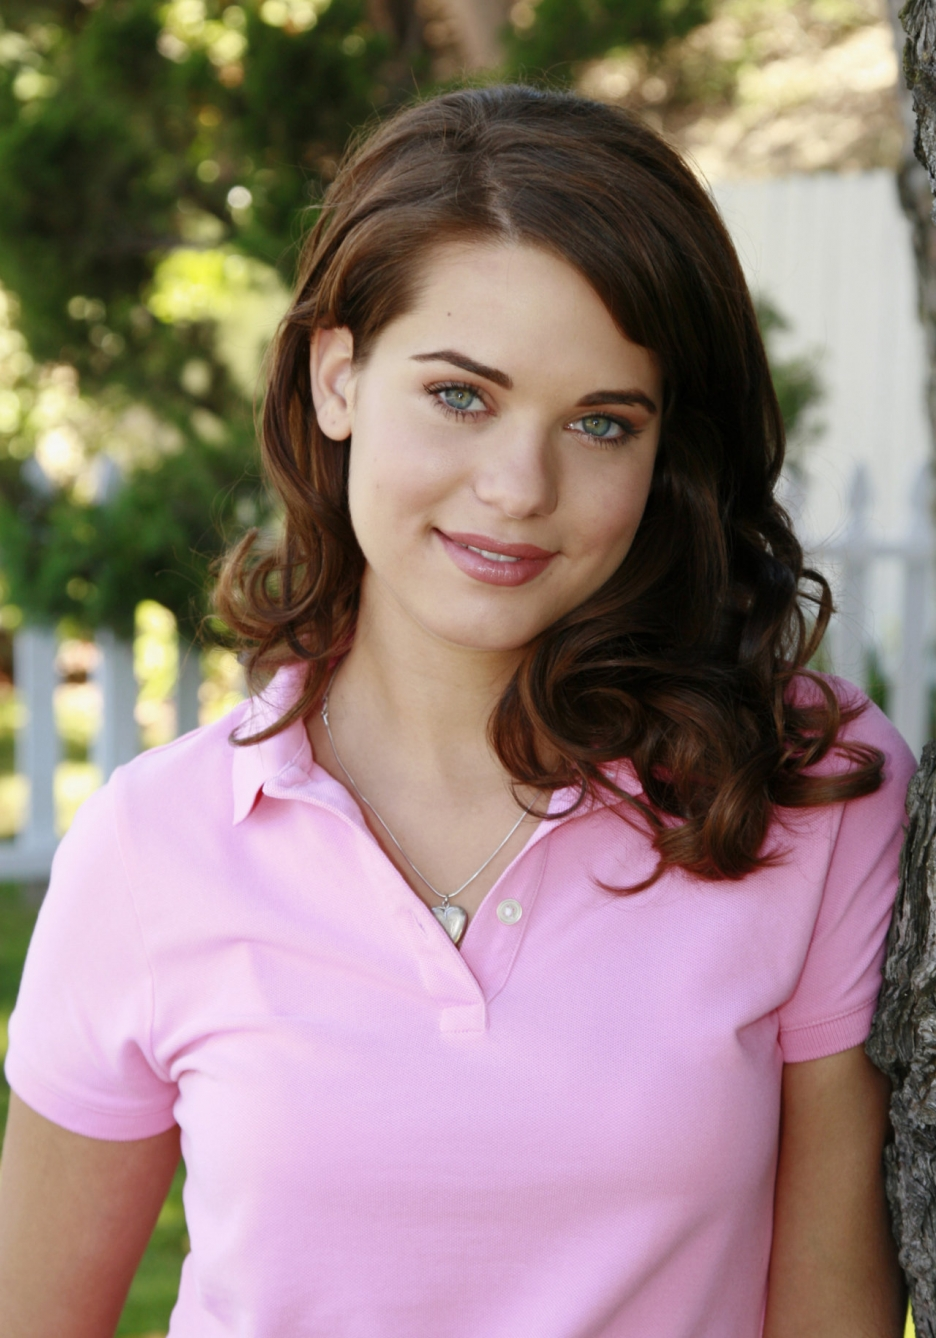 lyndsy-fonseca-pictures